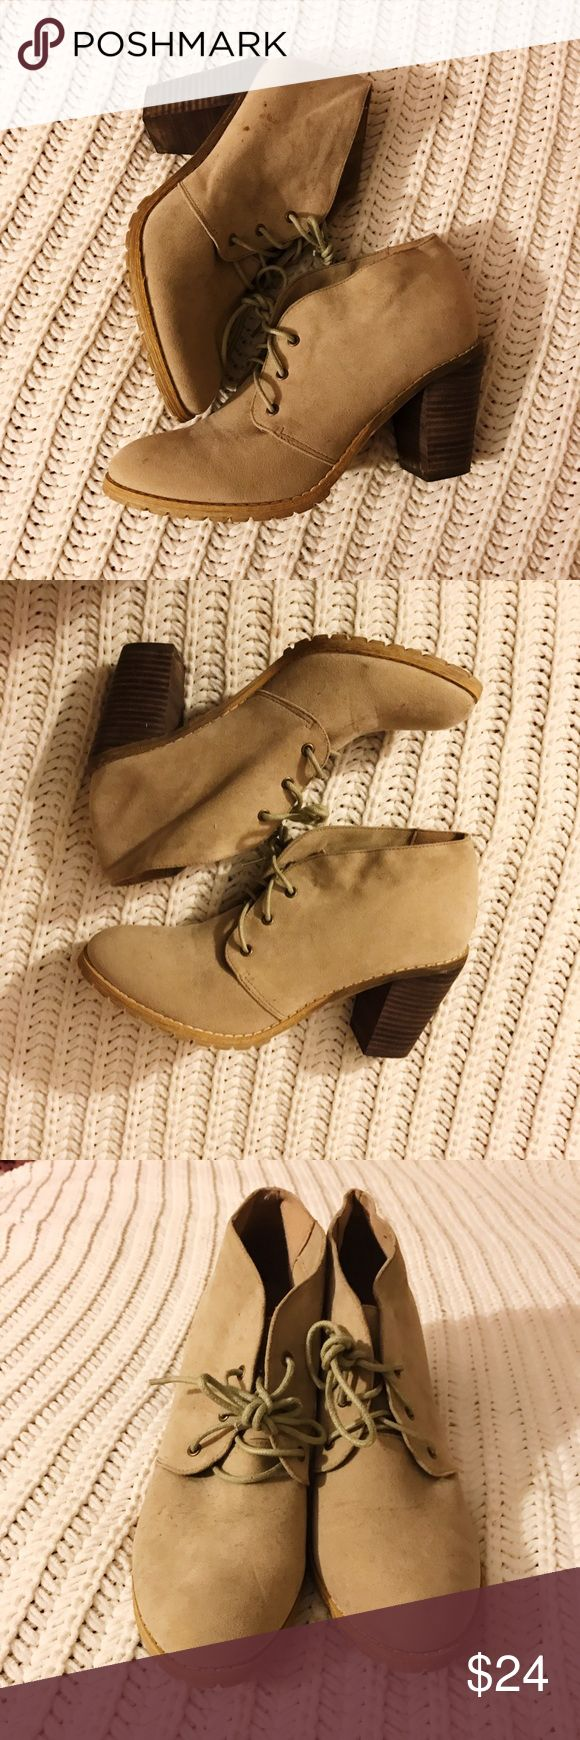 Tan Booties! 💛 tan booties from restricted. Only worn a handful of times- some specks on one shoe as shown in picture, which I'm sure could be cleaned off- I just don't have anything to do it with! excellent condition aside from that which honestly looks more noticeable in the picture. Size 8- true to size Restricted Shoes Ankle Boots & Booties